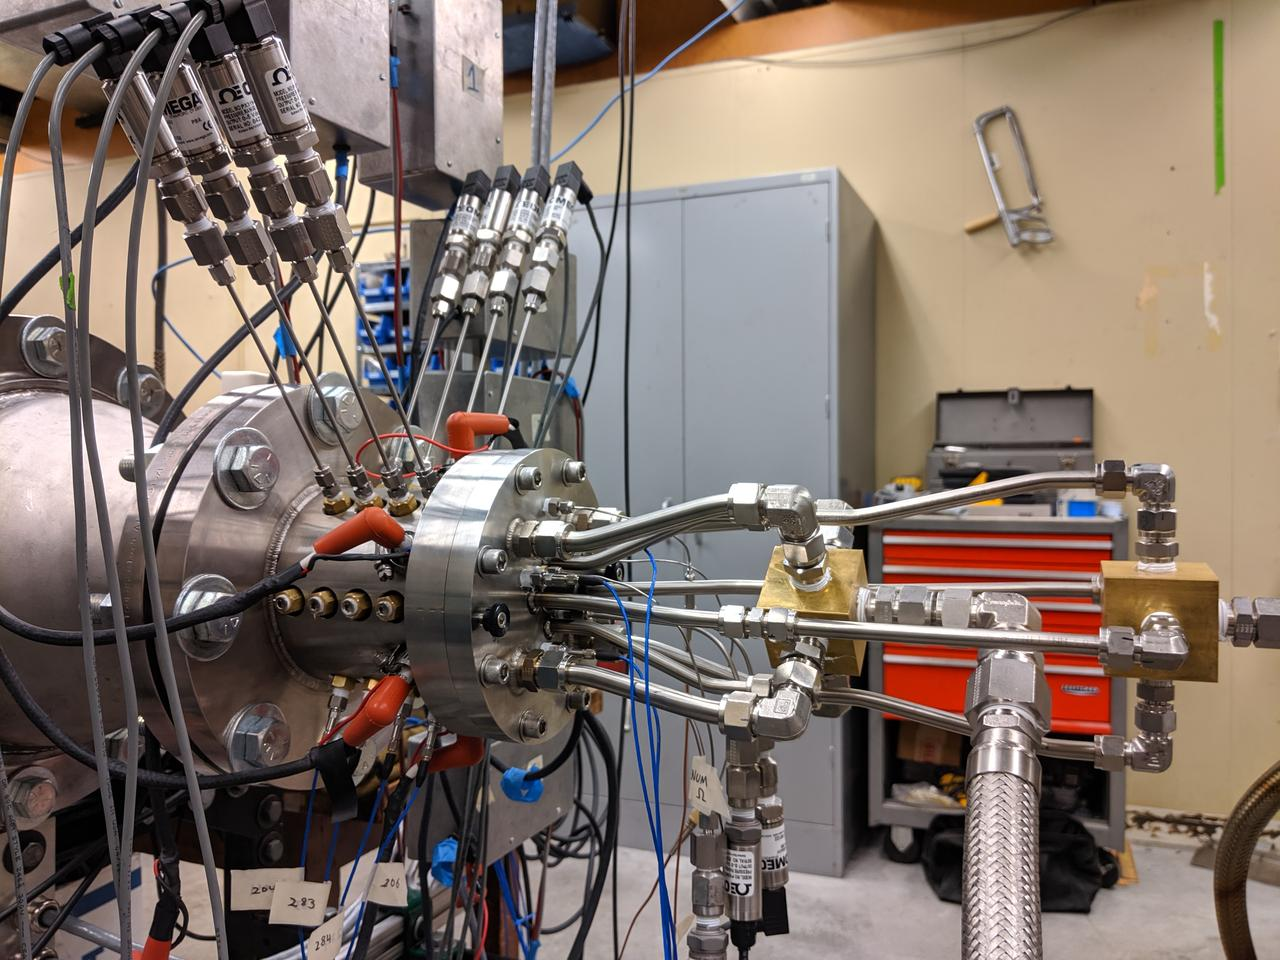 The researchers developed an experimental rotating detonation engine where they could control different parameters, such as the size of the gap between the cylinders.